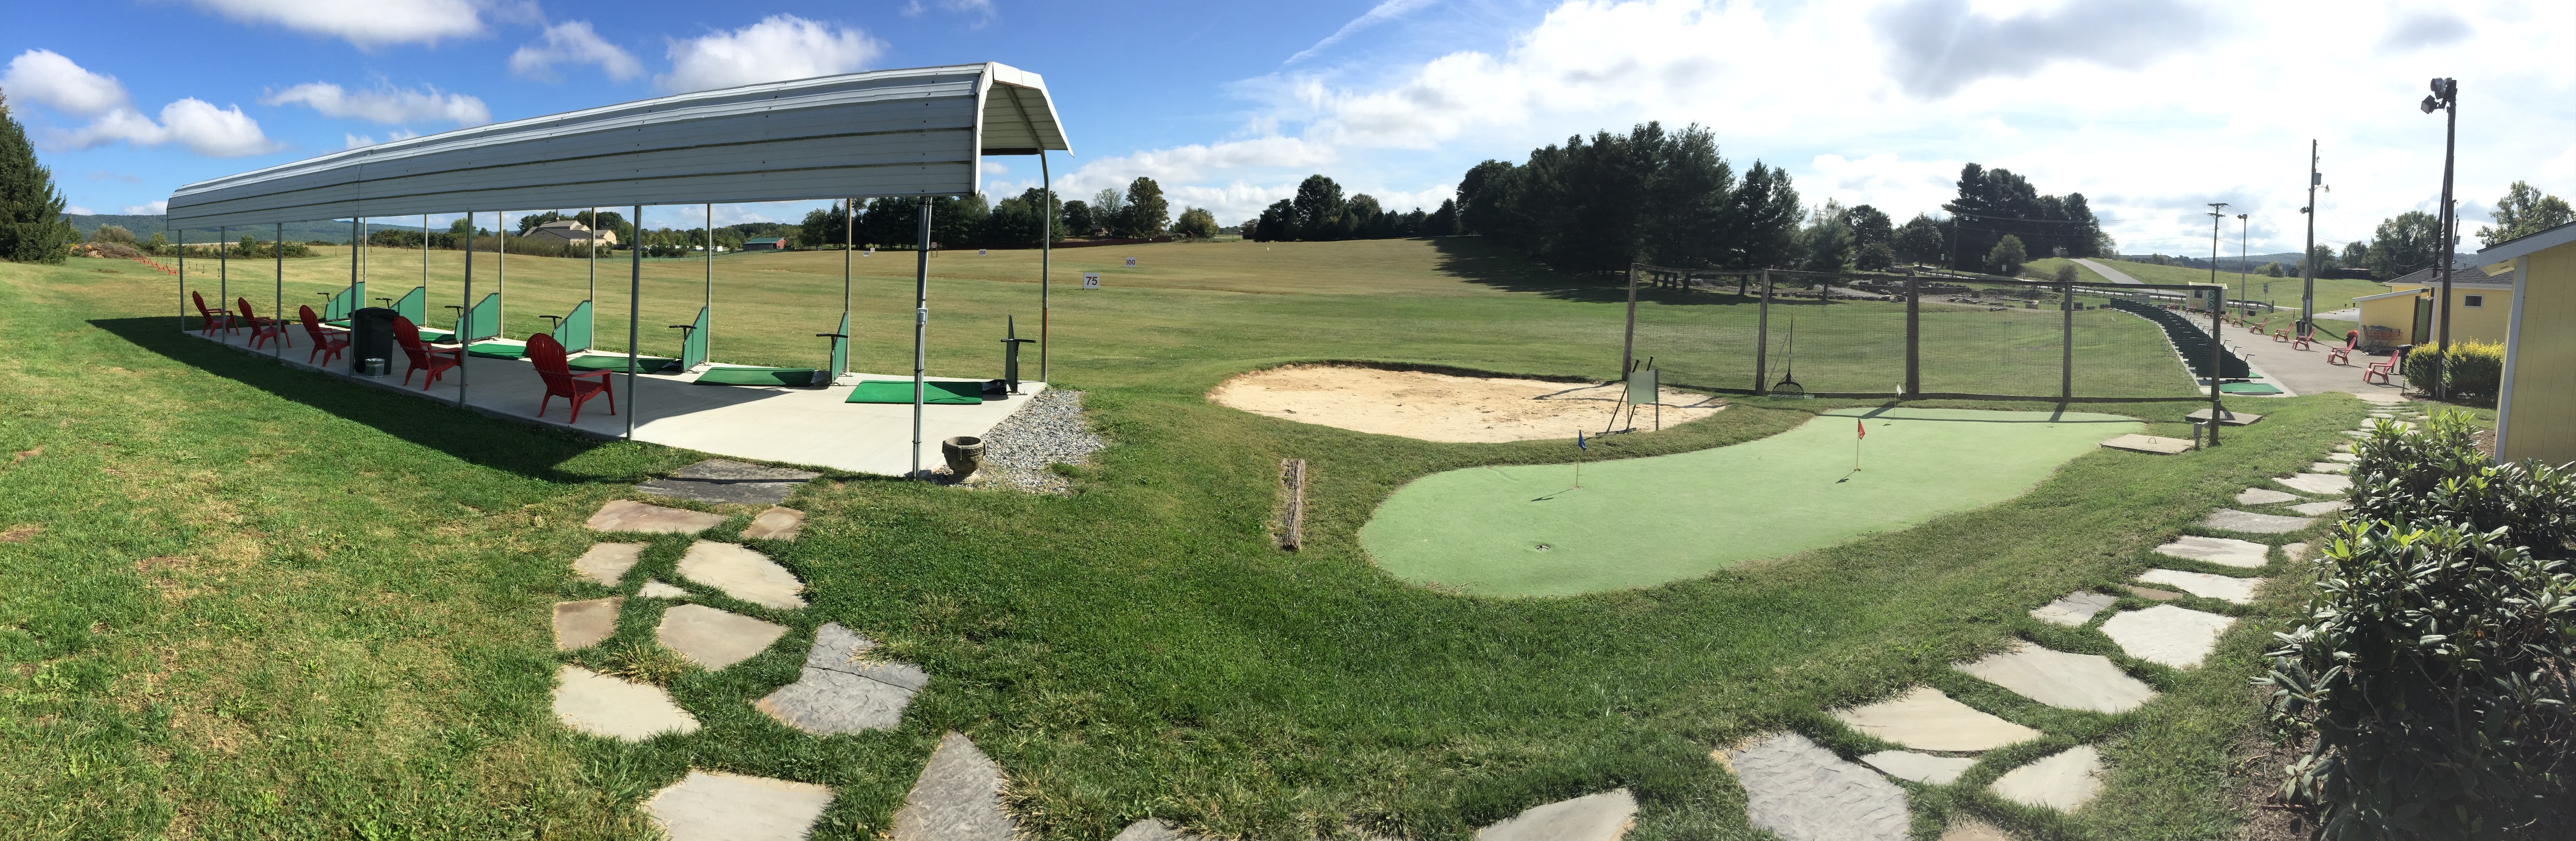 Practice Green and Bunker